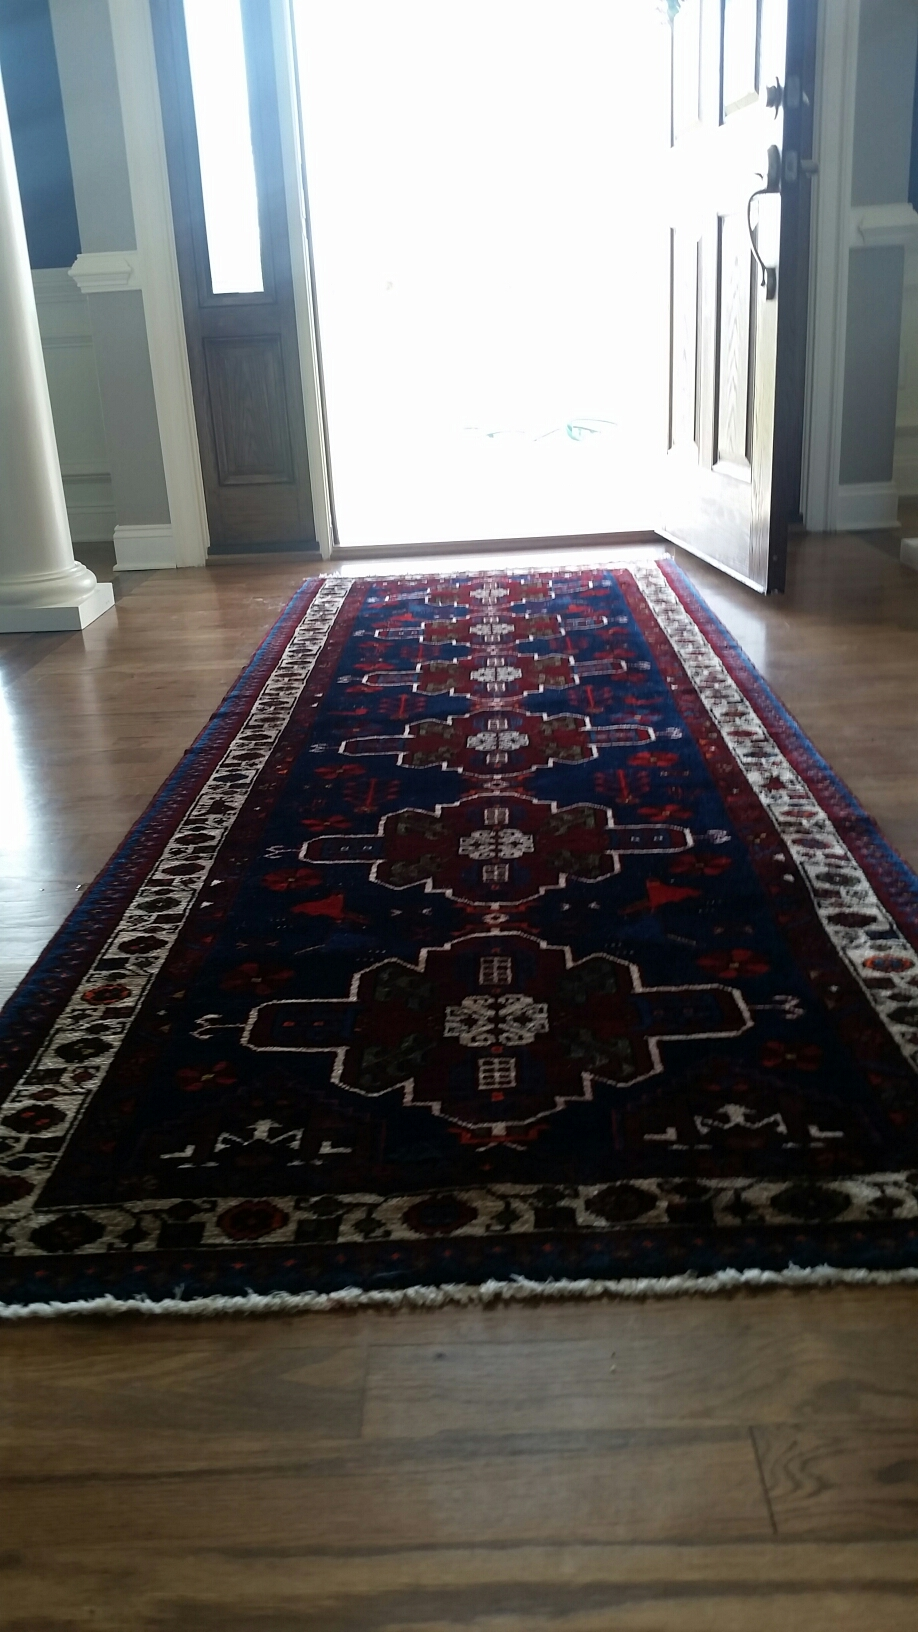 Ashland, VA - Cleaned some free scatter rugs and runners at this home!